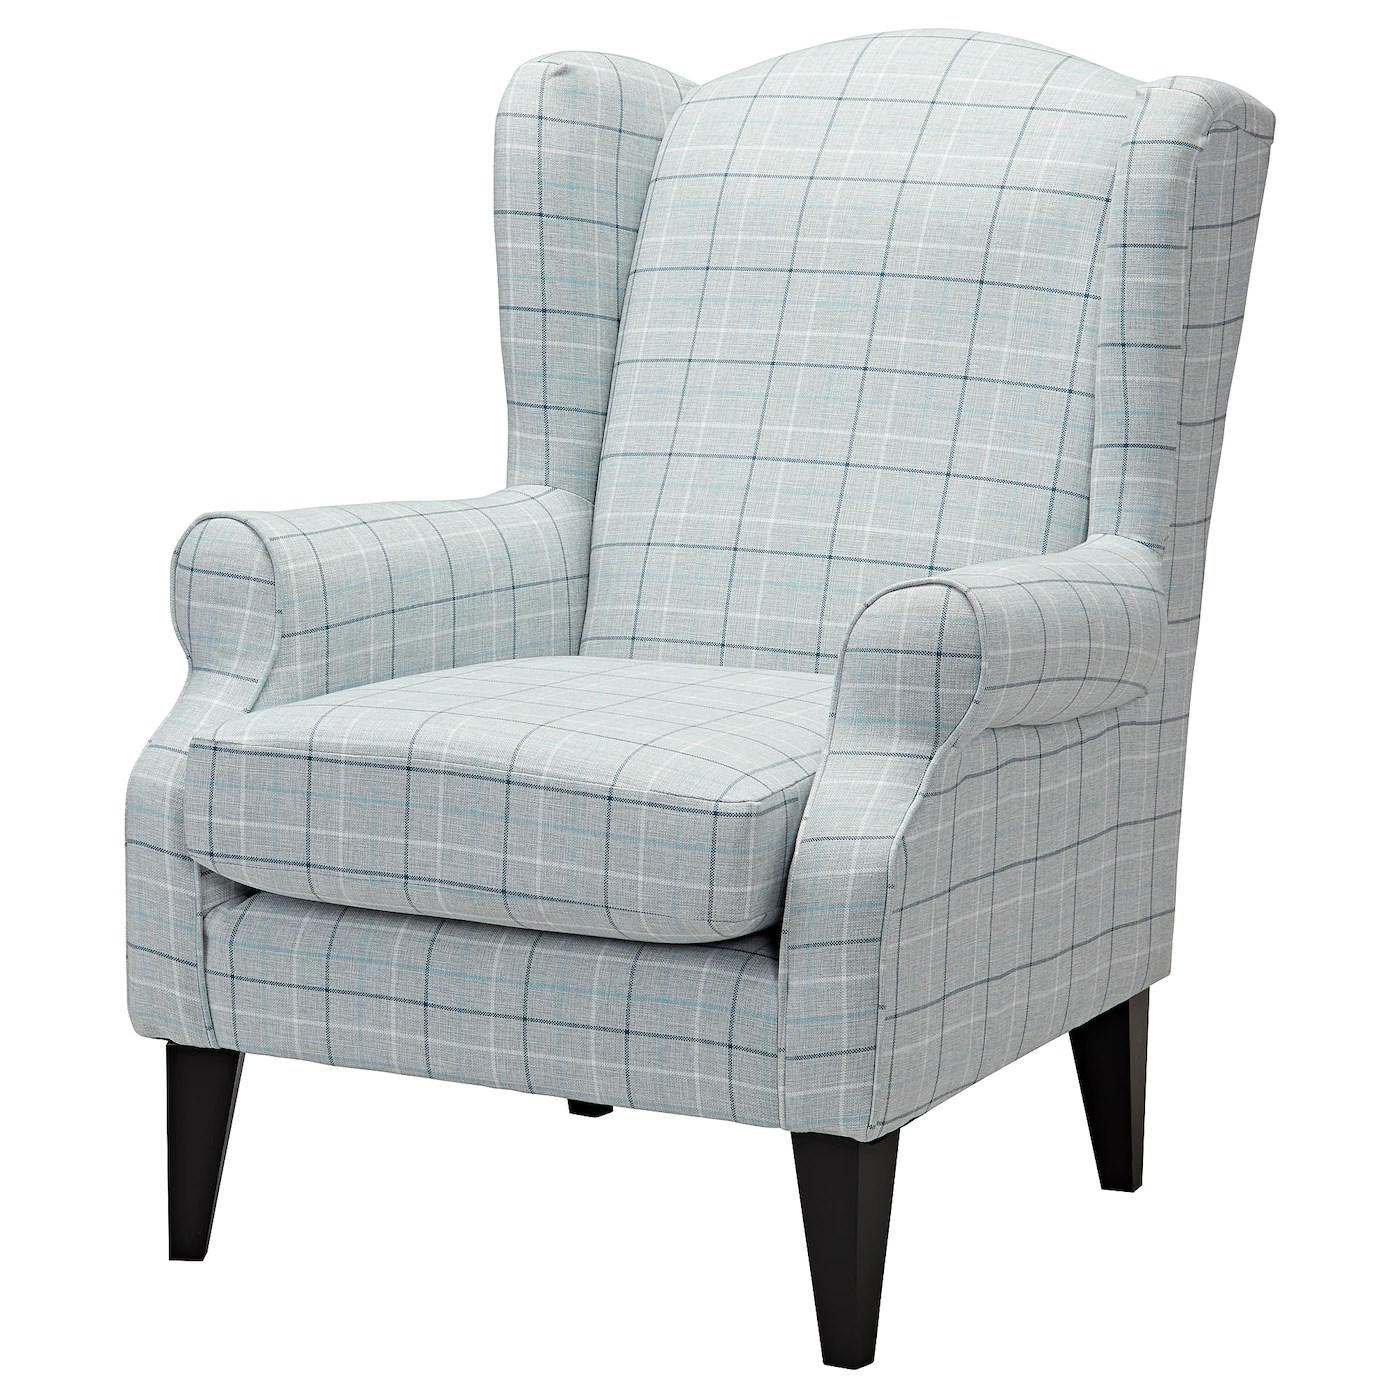 grey wing chair toddler folding table and chairs torsebro light check ikea